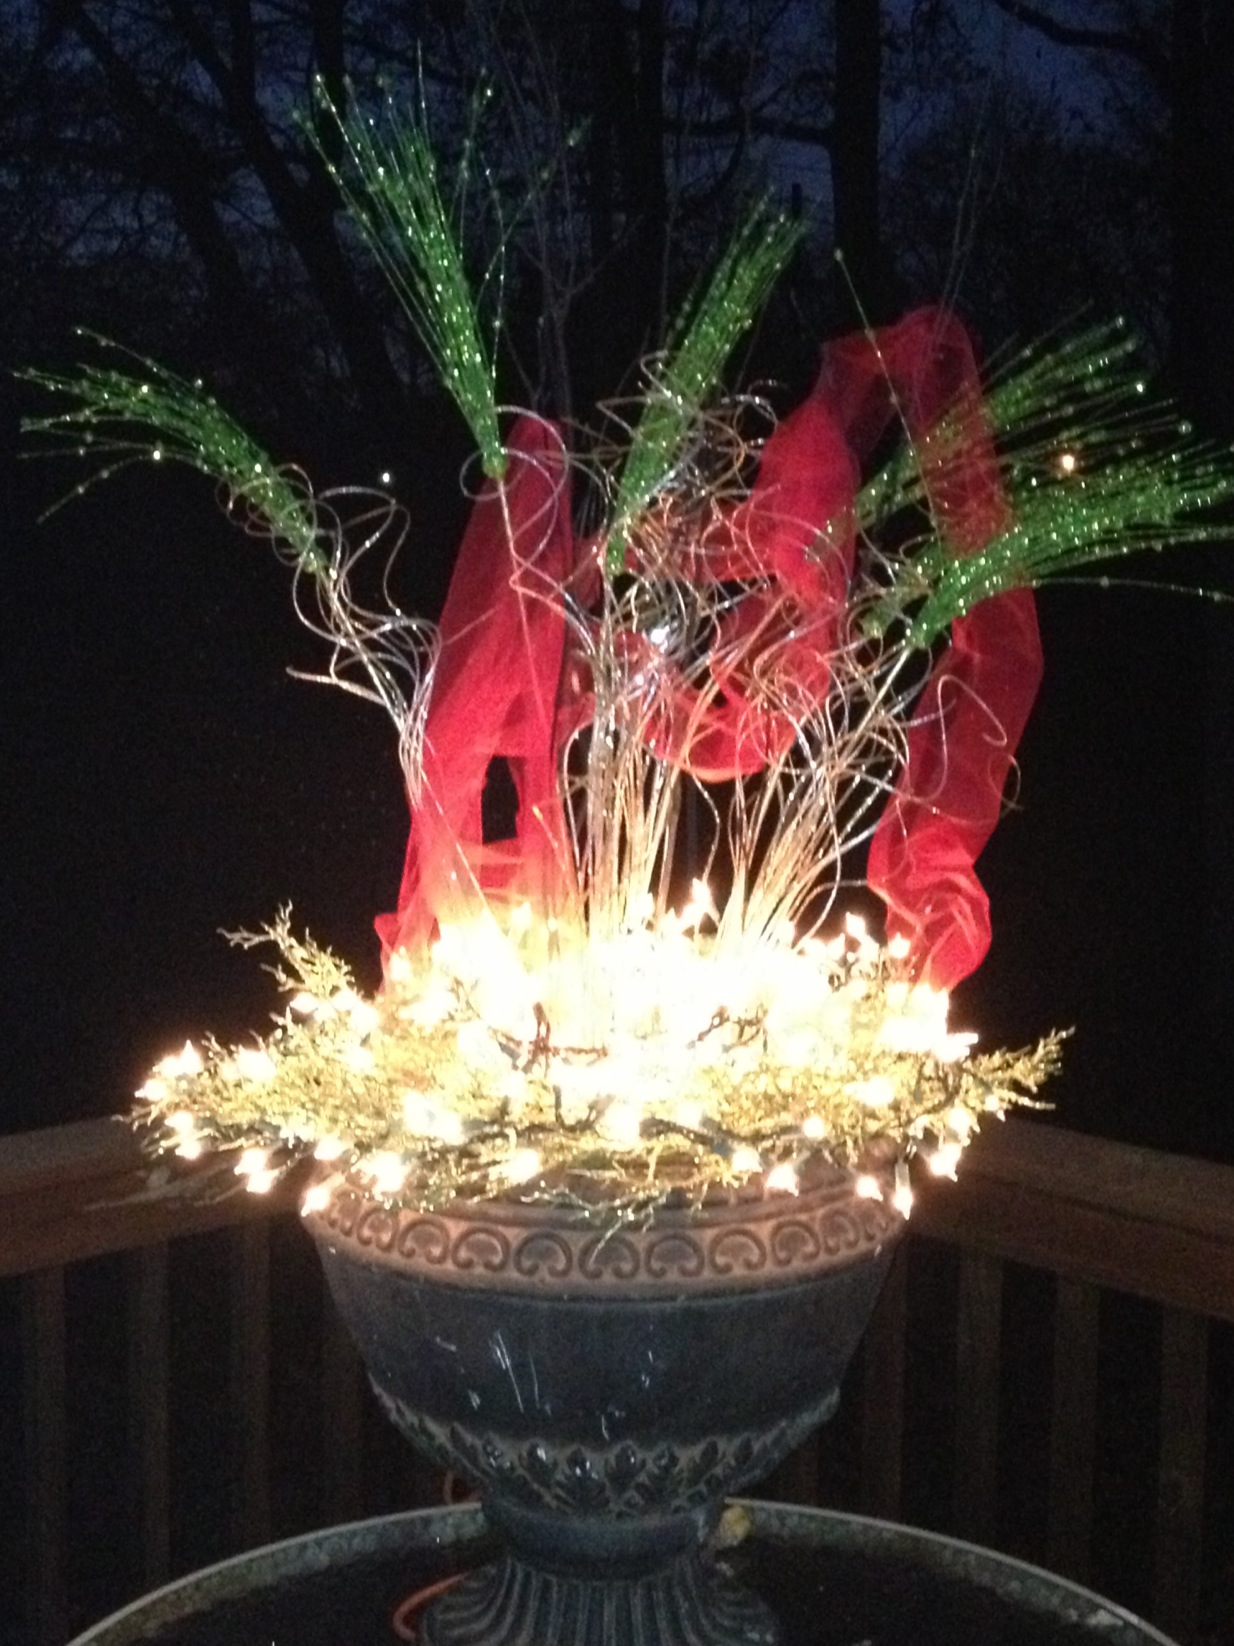 Planter with String Lights